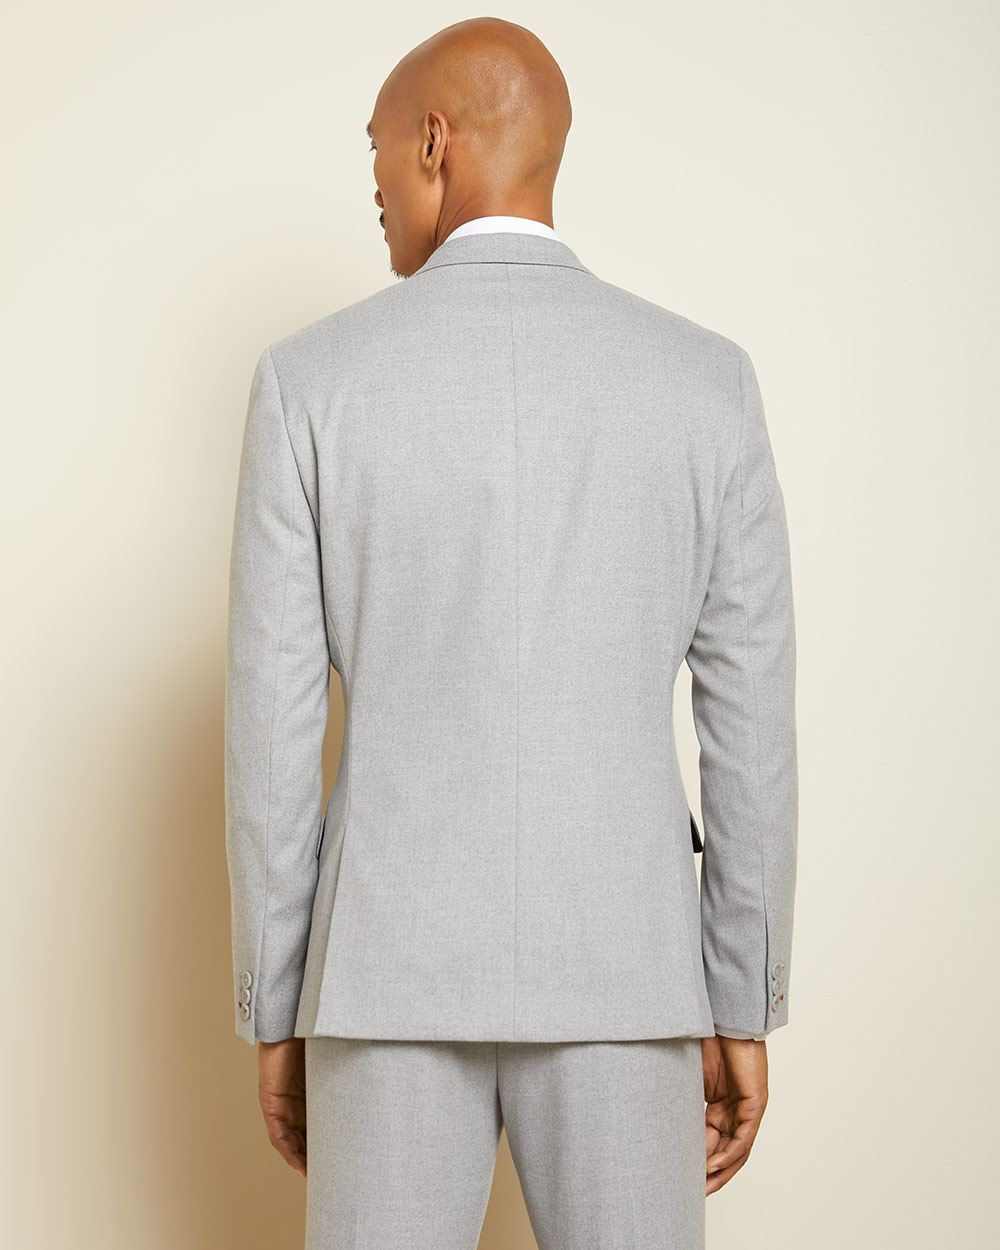 Tailored fit twisted yarn 40-hour suit blazer